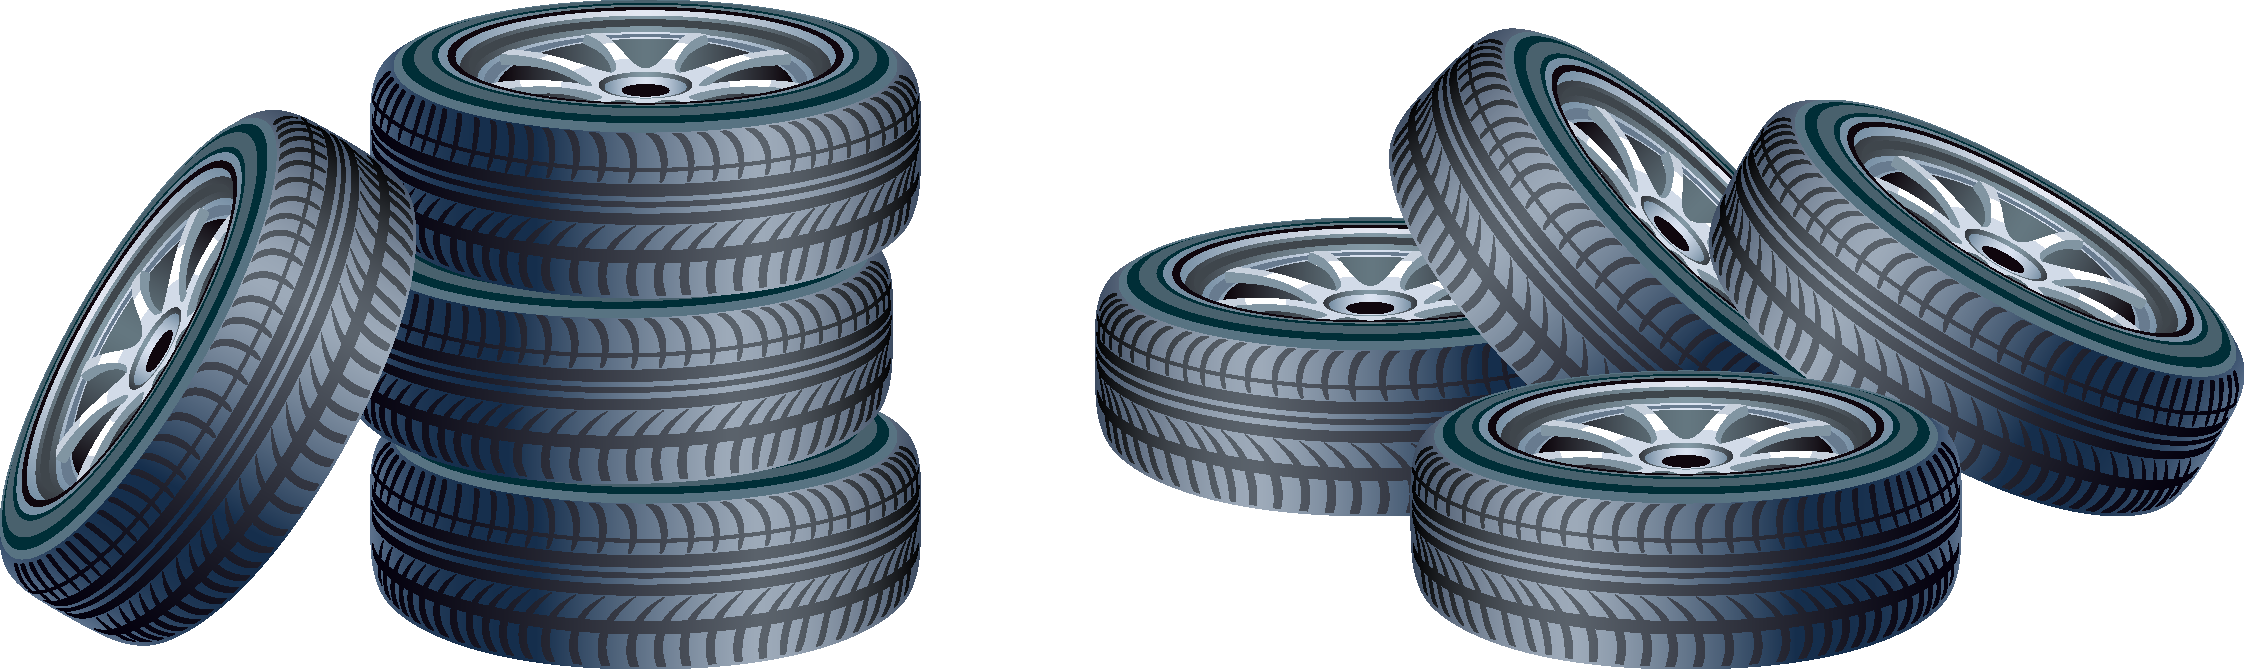 Race car tire clipart banner download Car Spare tire Clip art - Car tires 2244*669 transprent Png Free ... banner download